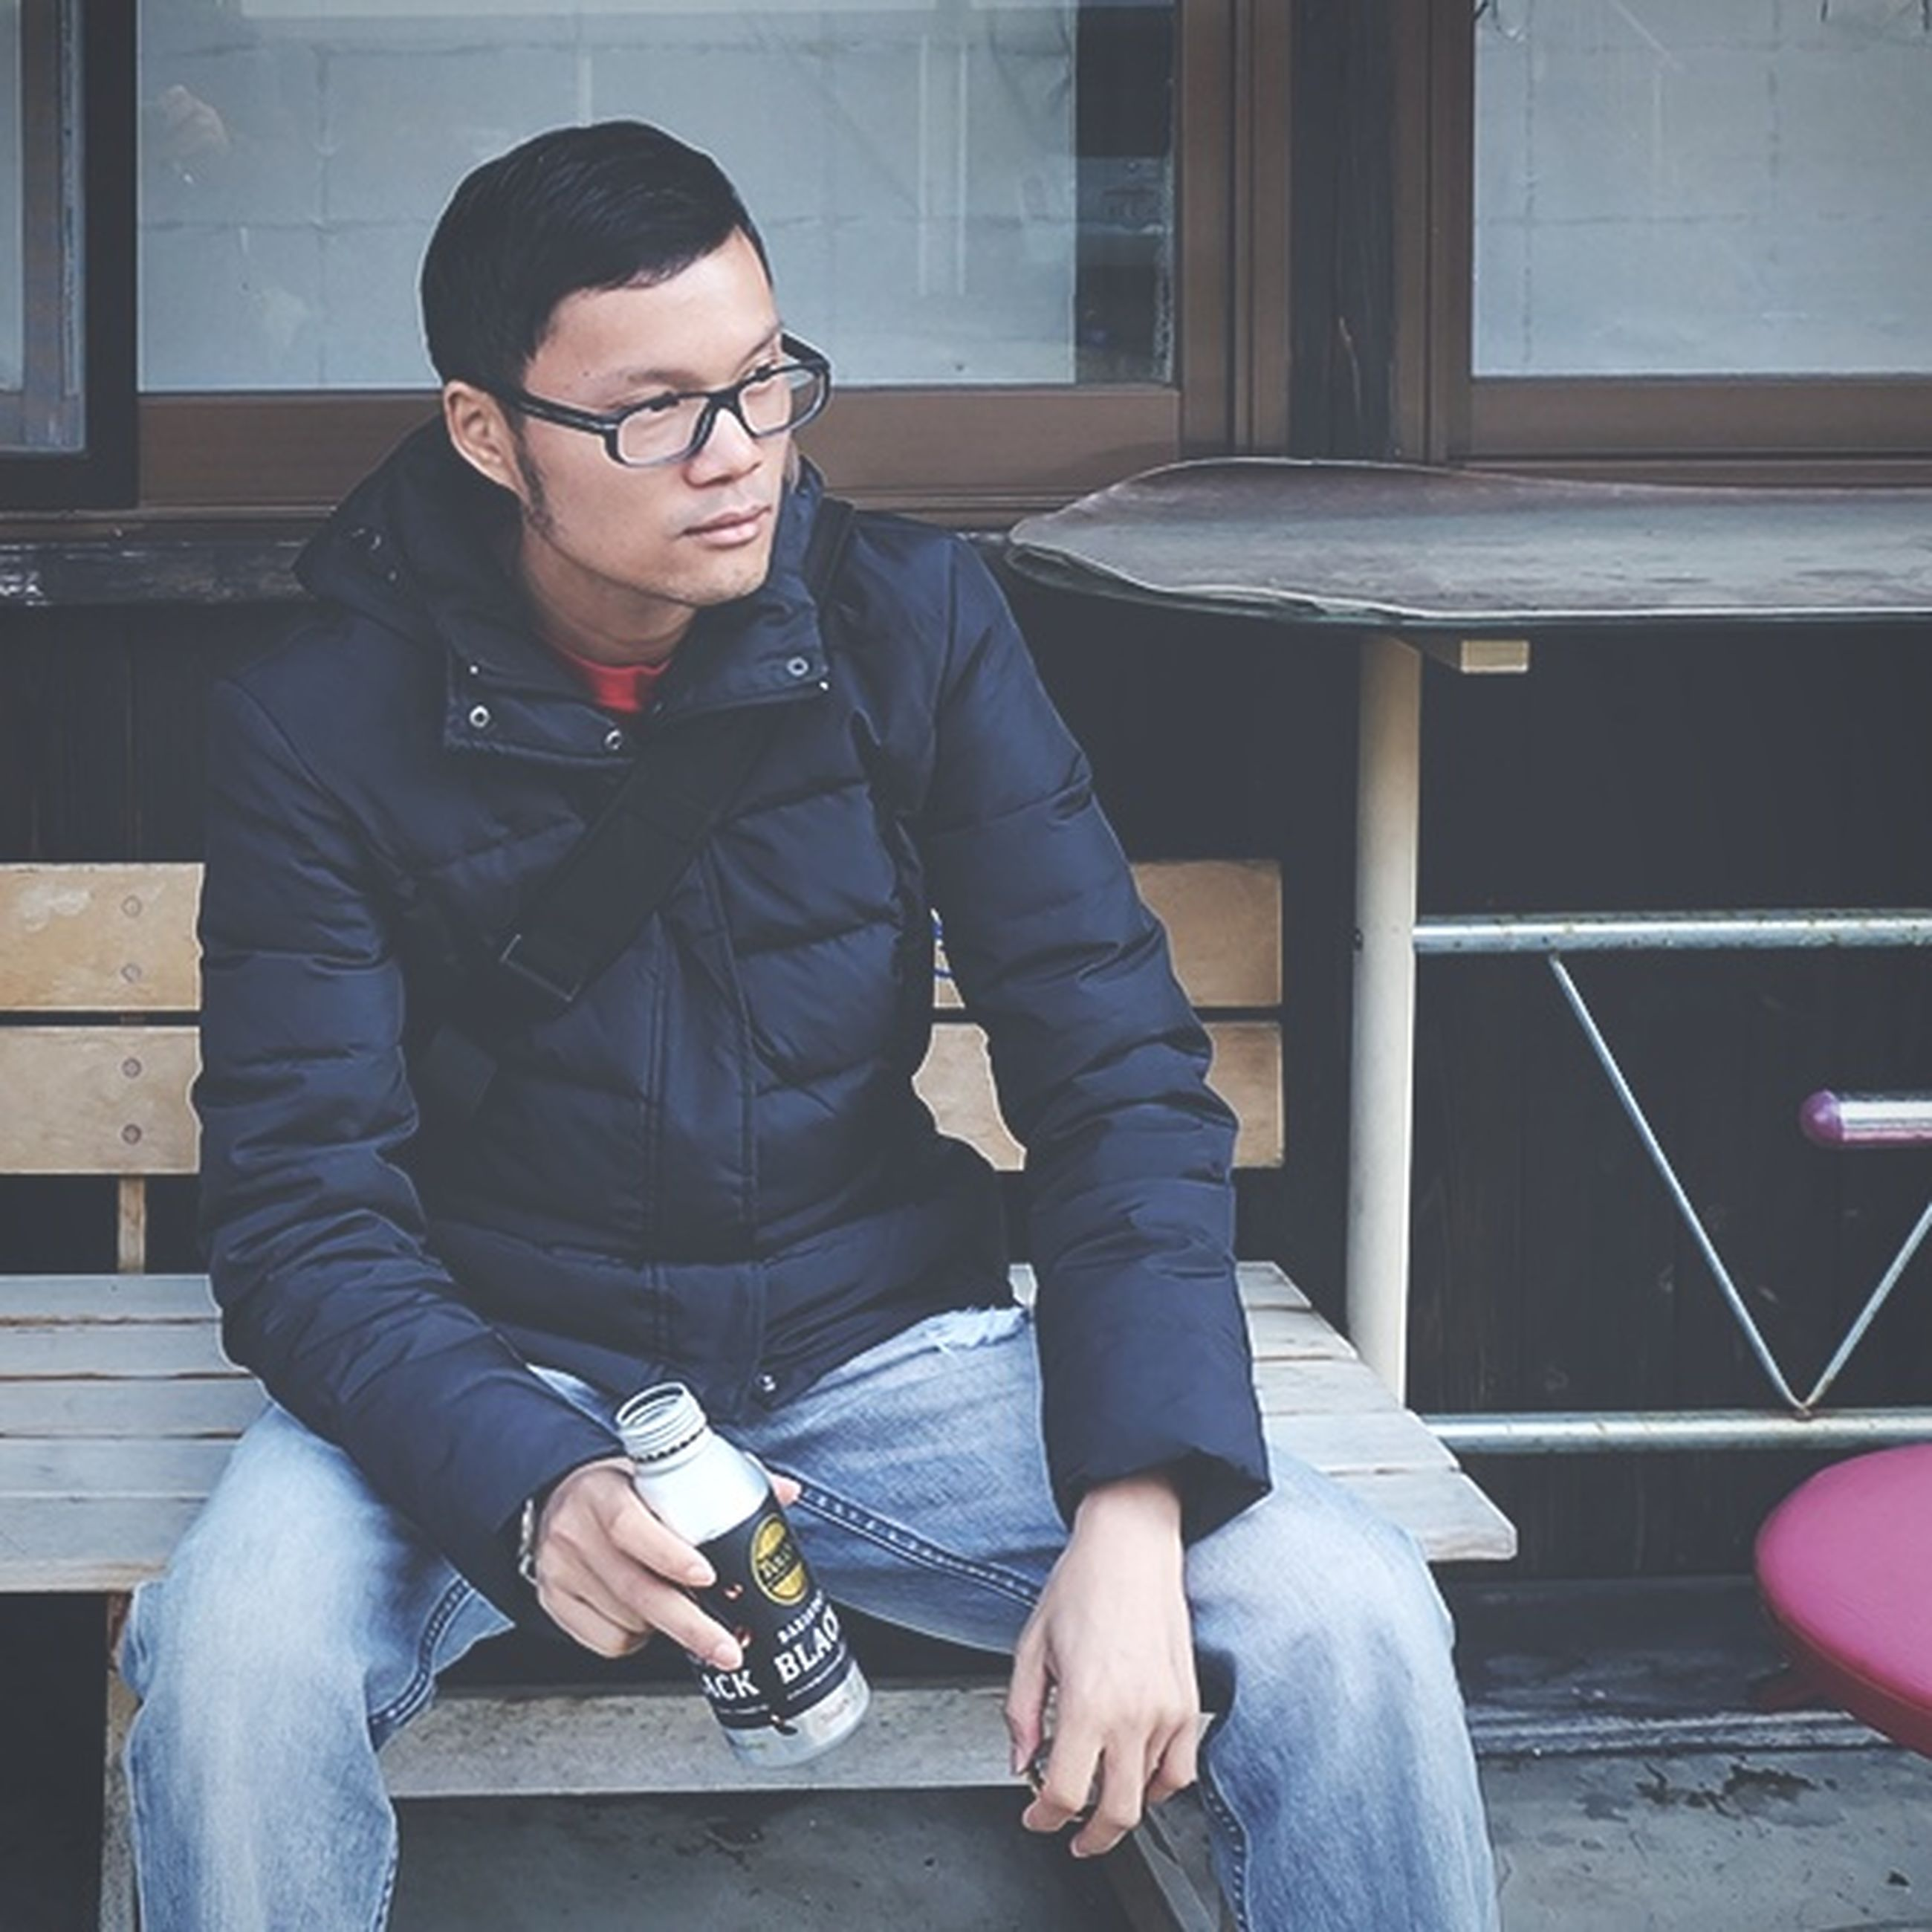 eyeglasses, sitting, one person, real people, three quarter length, young adult, casual clothing, front view, glasses, jacket, lifestyles, leisure activity, day, young men, relaxation, young women, portrait, outdoors, people